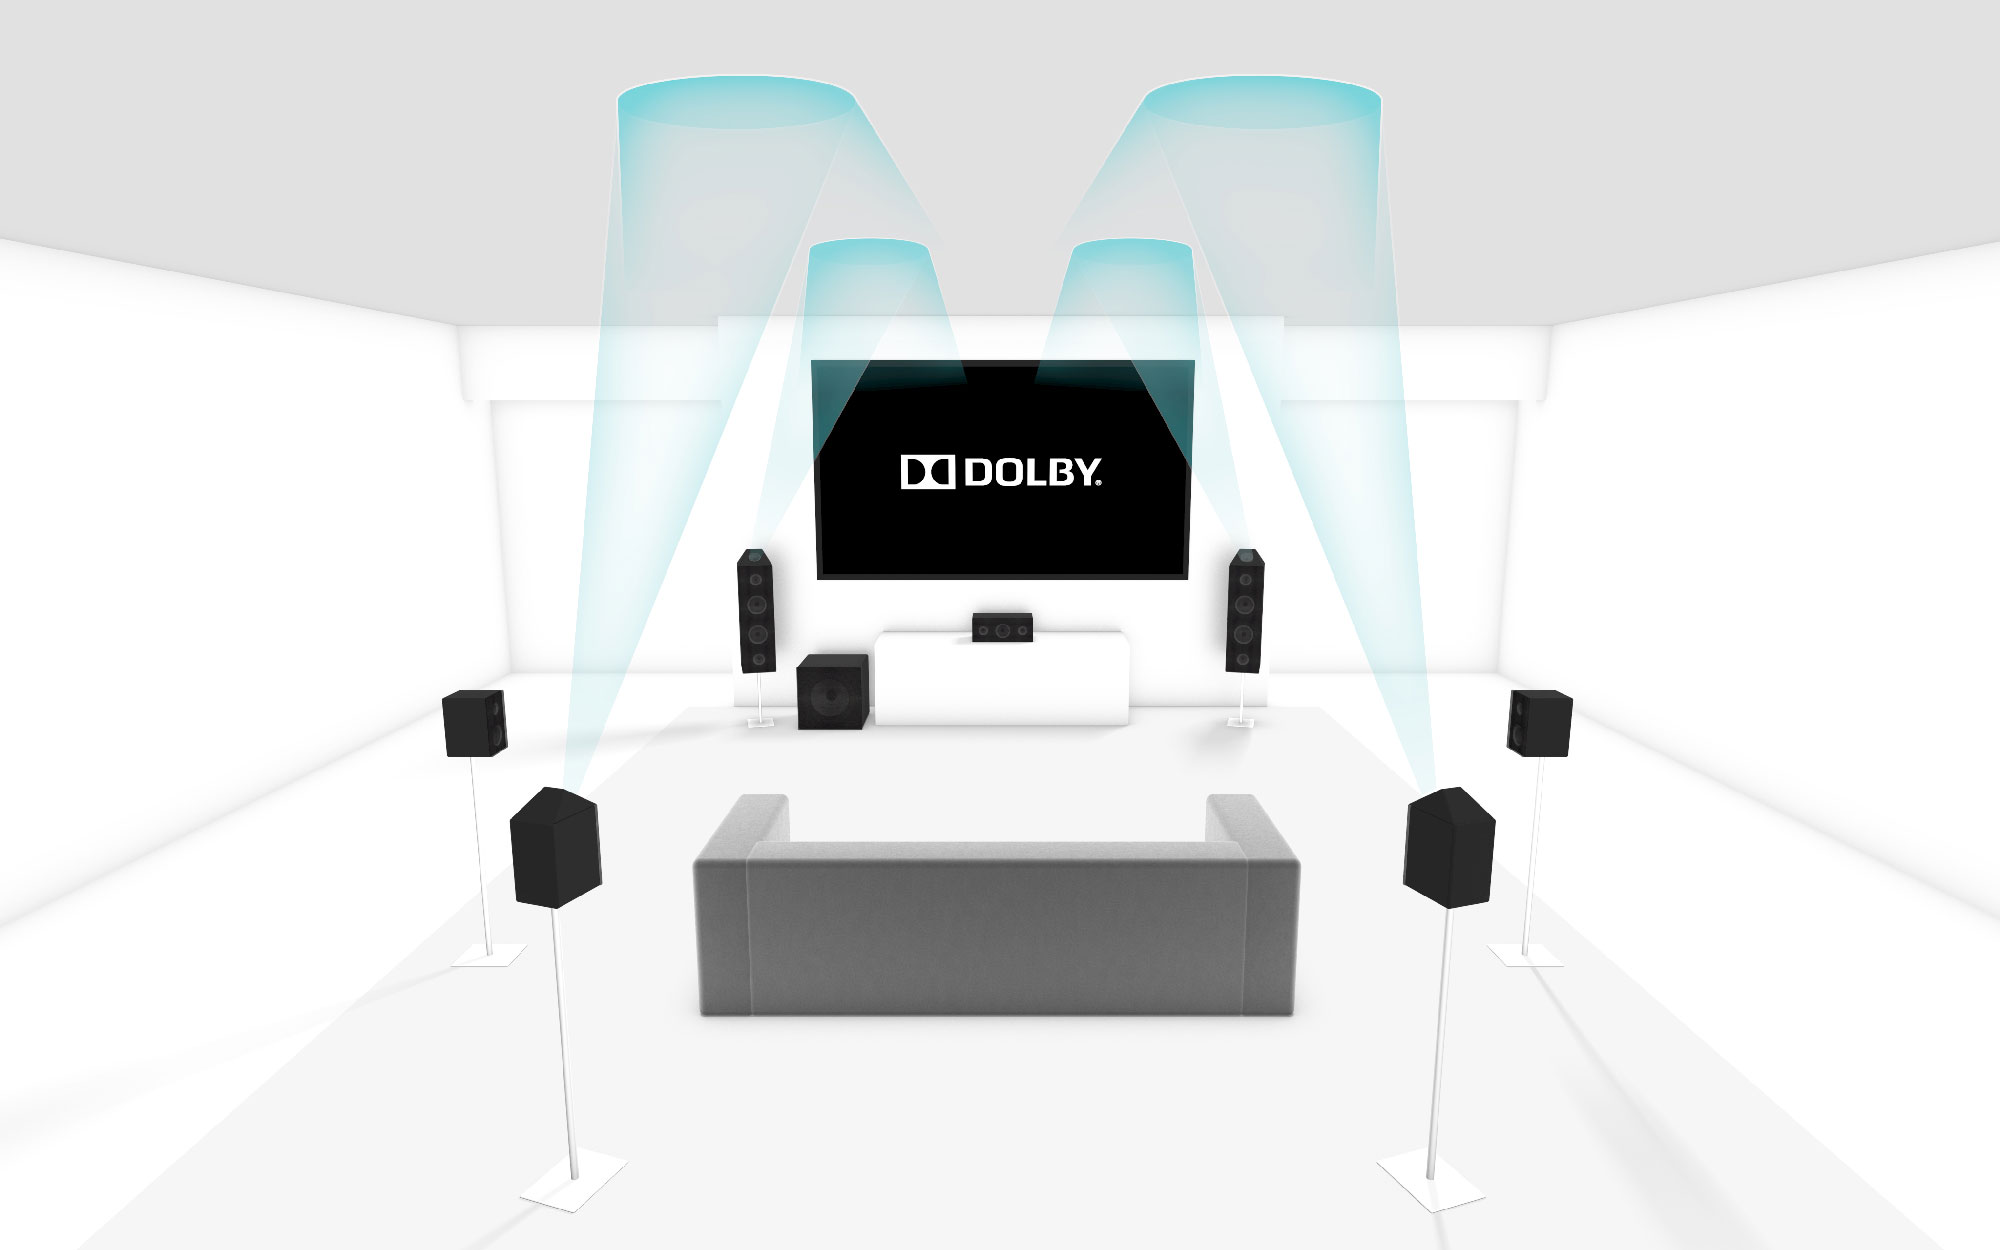 5 1 home theater setup diagram with 10 Things Need Know Doblys Atmos Home Theatre Mobile 3d Sound System on 673186 Side Surround Speaker Slightly Front Listening Position further Upgrade Home Theater System Dolby Atmos in addition Useful diagrams tutorials videos moreover Speaker placement besides Definition.